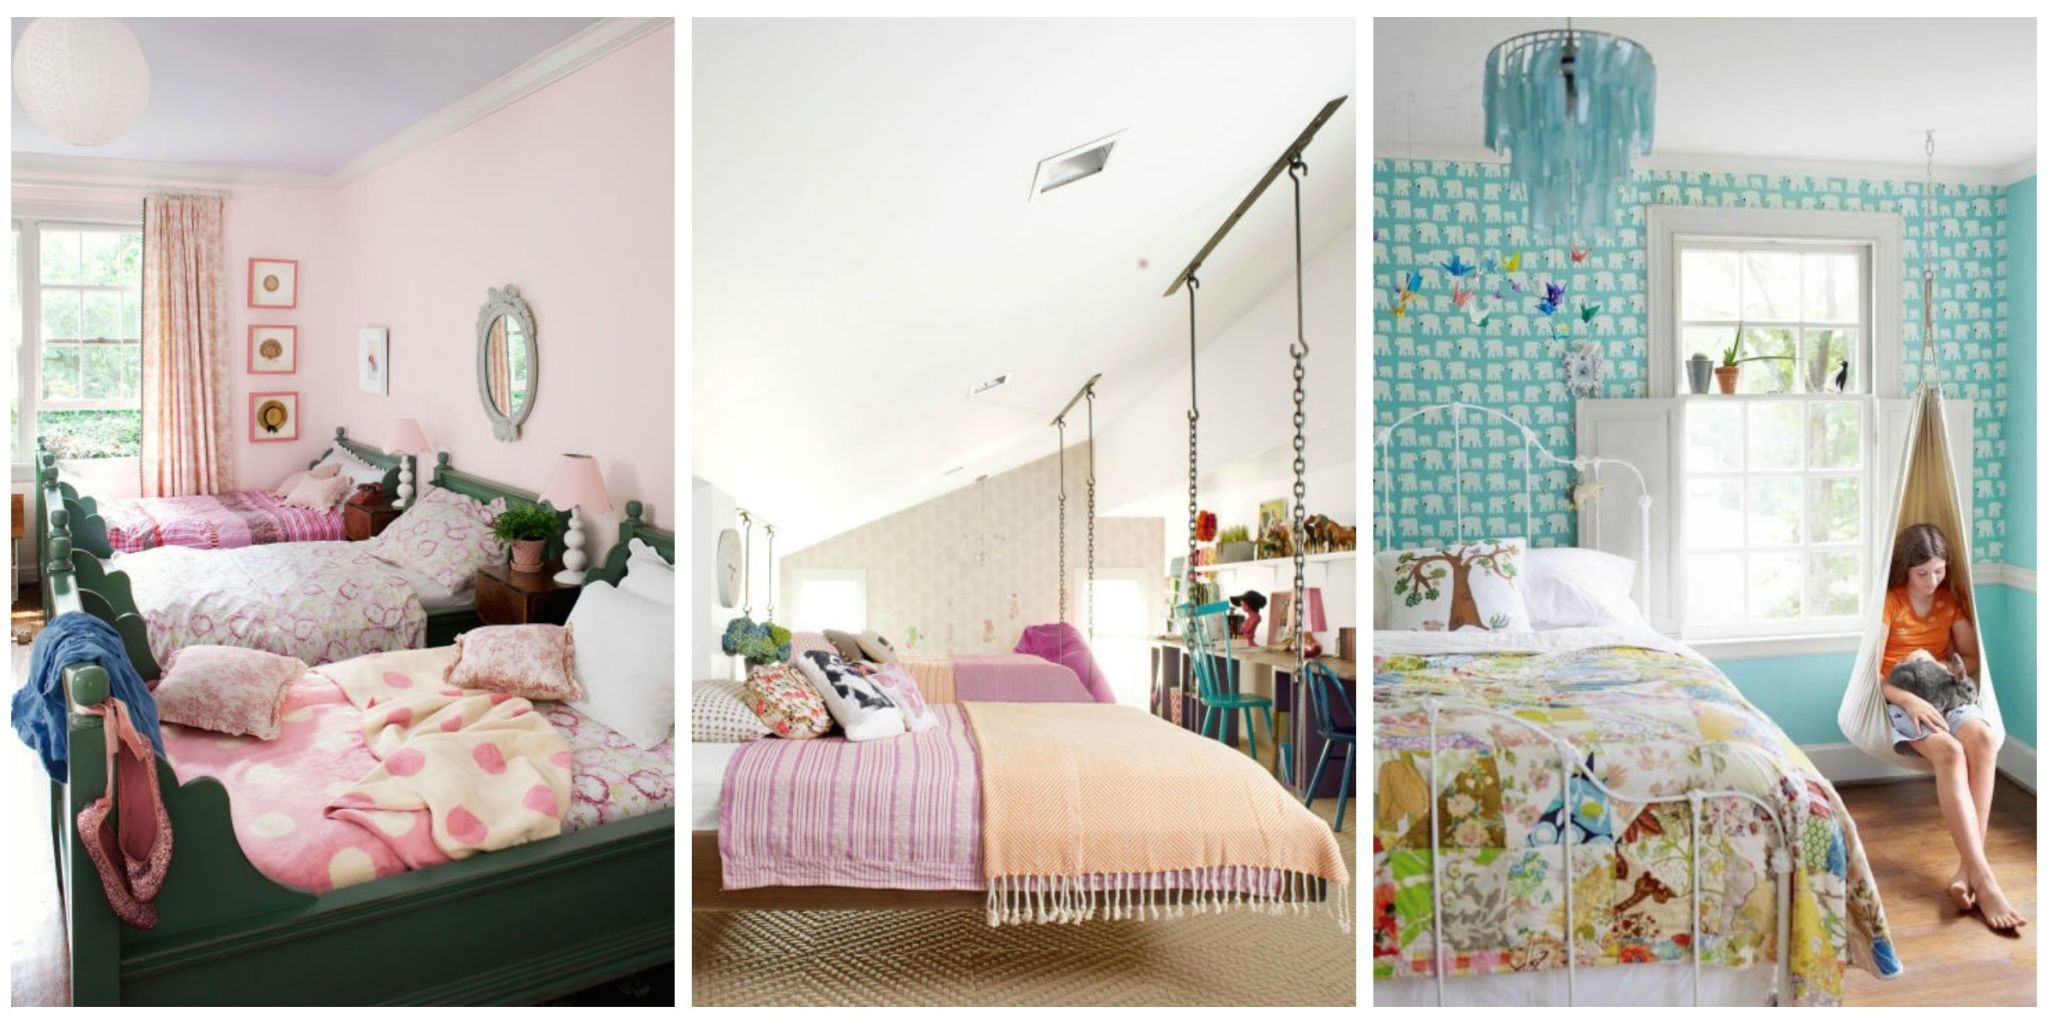 Superbe Your Daughter Will Love A Room Filled With Color, Patterns, And Cute  Accessories! Click Through To Find Oh So Pretty Bedroom Decorating Ideas  For Girls Of ...